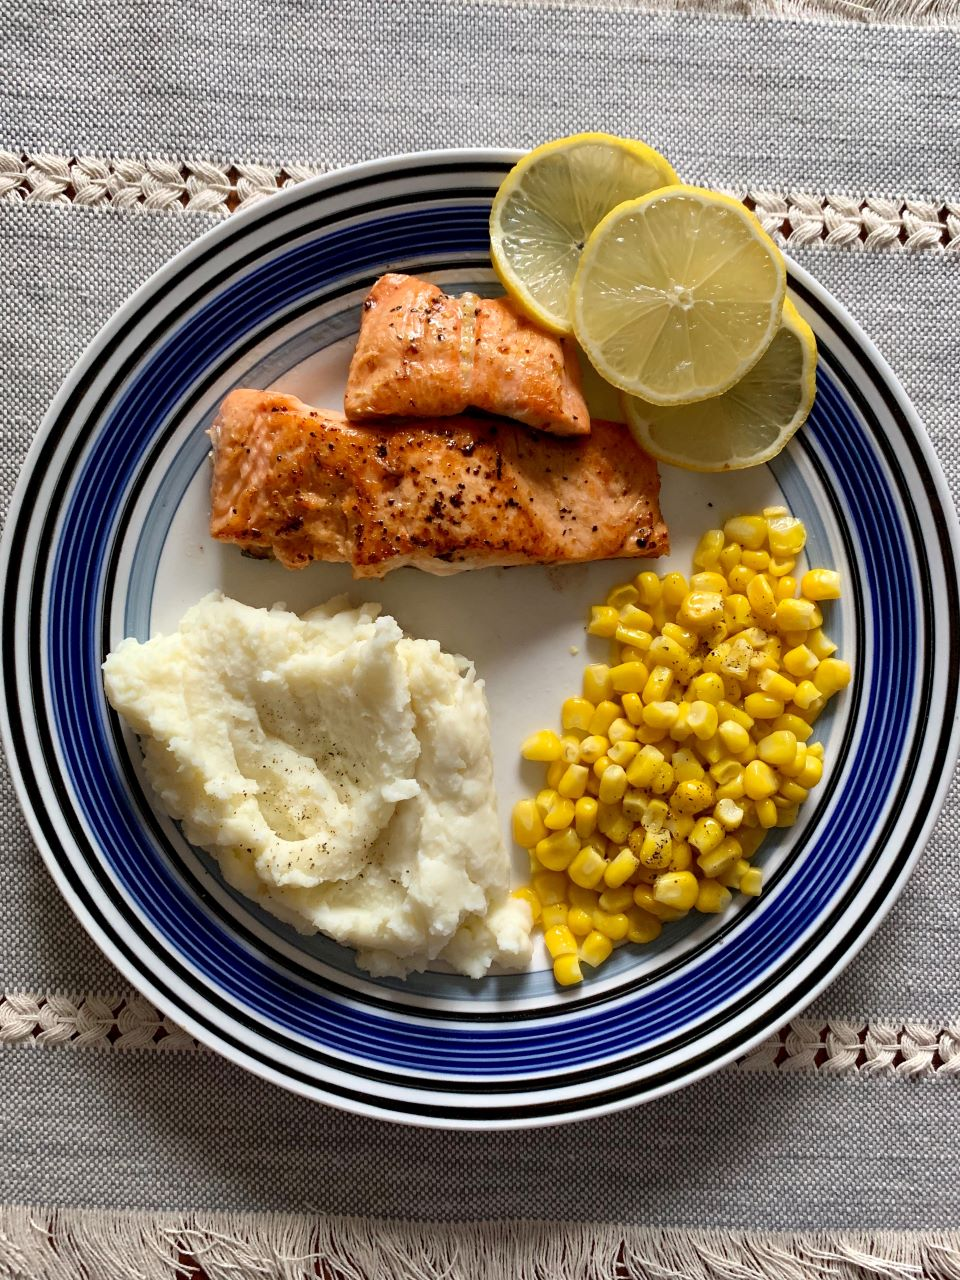 Pan Seared Lemon Pepper Salmon #recipe